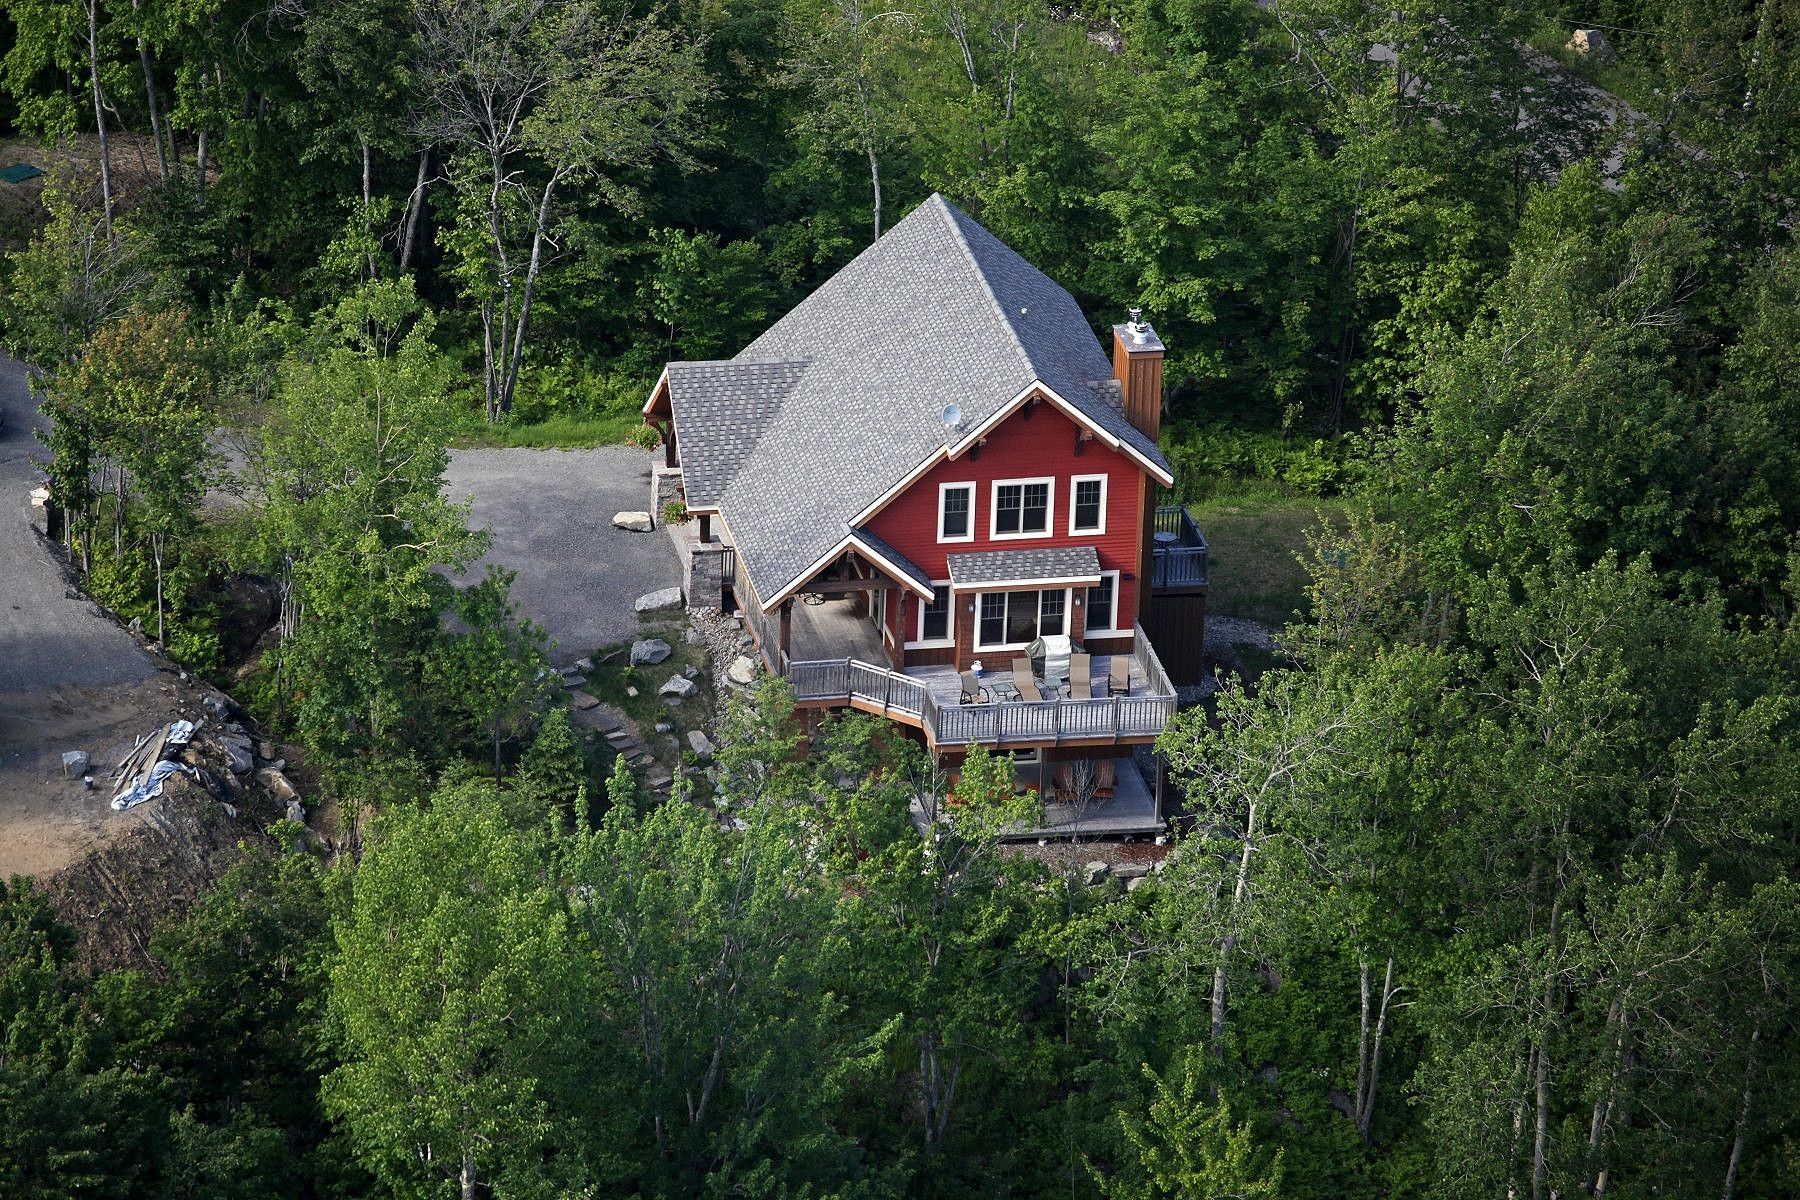 Single Family Home for Sale at Mont-Tremblant, Laurentides 380 Allée de l'Aventure, Mont-Tremblant, Quebec, J8E0A9 Canada